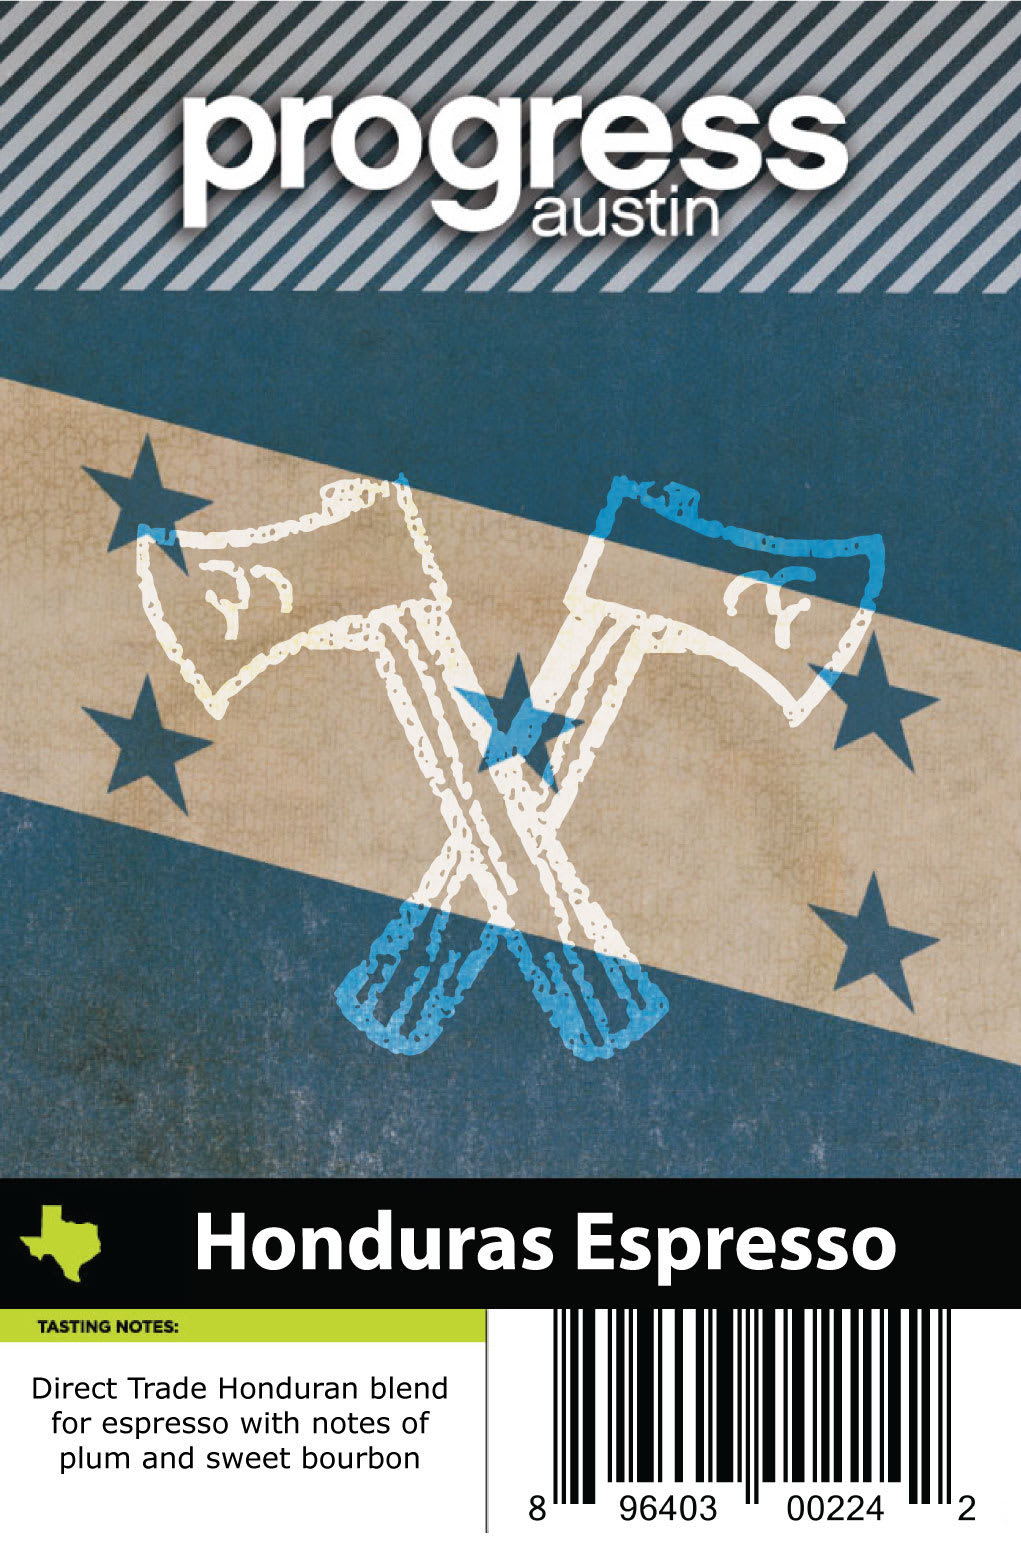 Direct Trade Honduras Espresso Blend